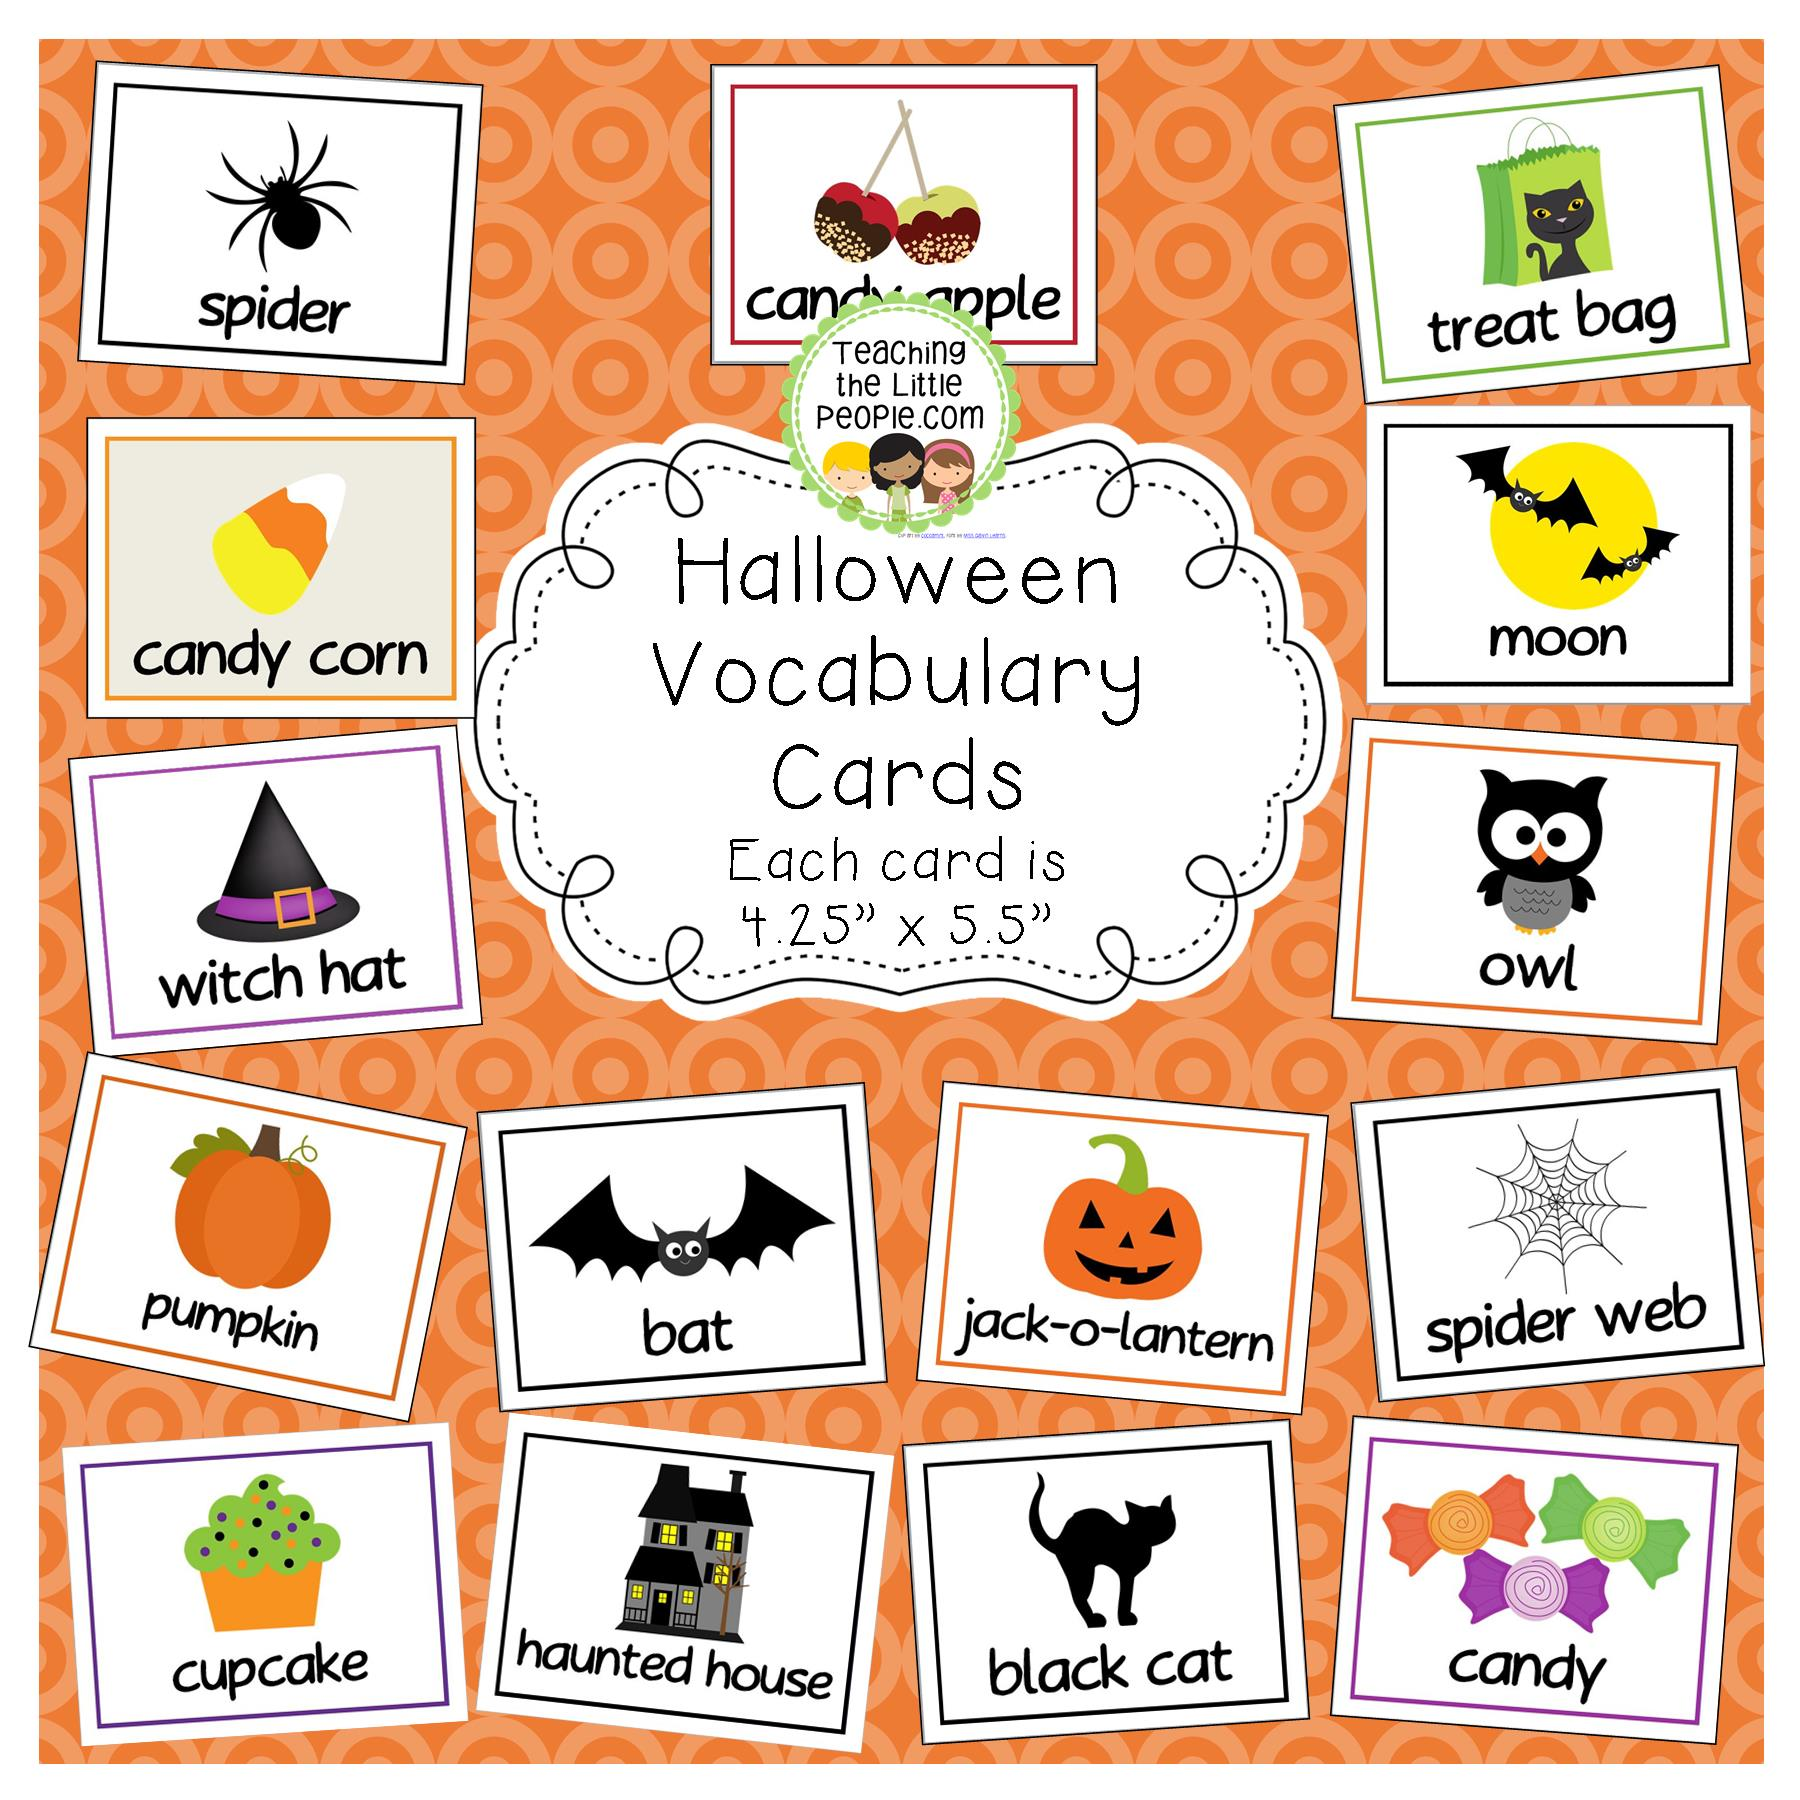 halloween vocabularyword cards for early childhood and kindergarten image - Halloween Vocab Words